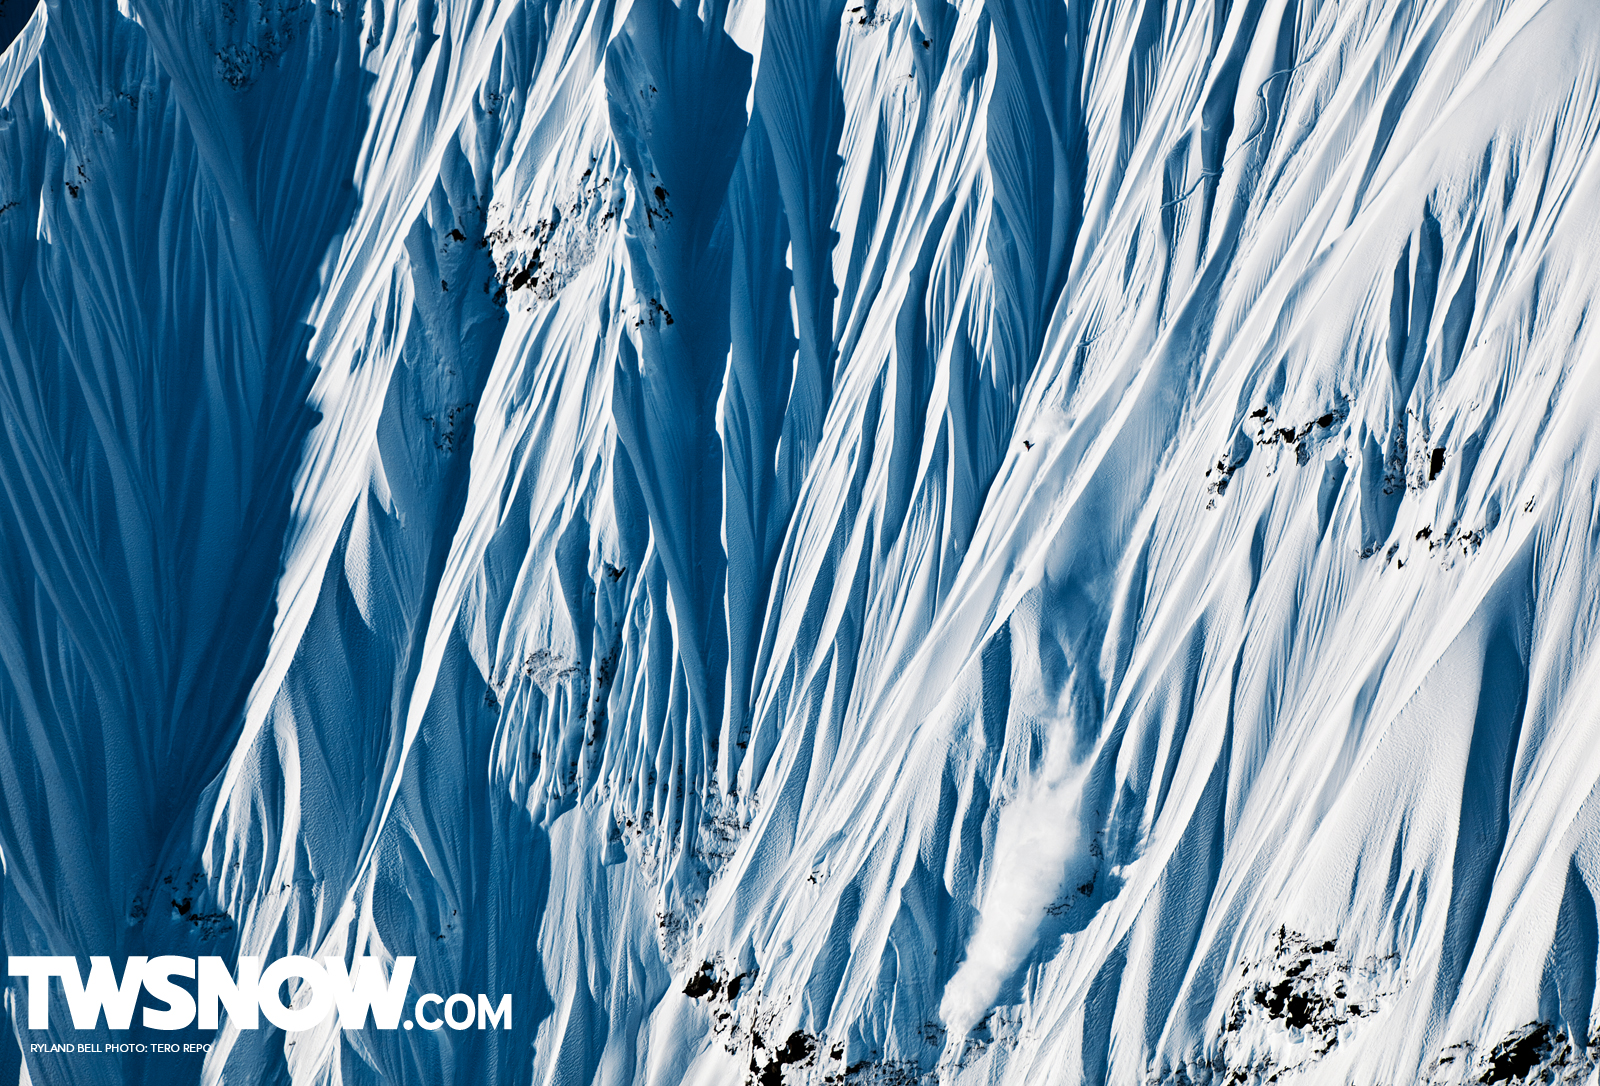 Squaw ripper Ryland Bell charging a really really big line in Alaska for Jeremy Jones' Deeper movie. photo: tero repo